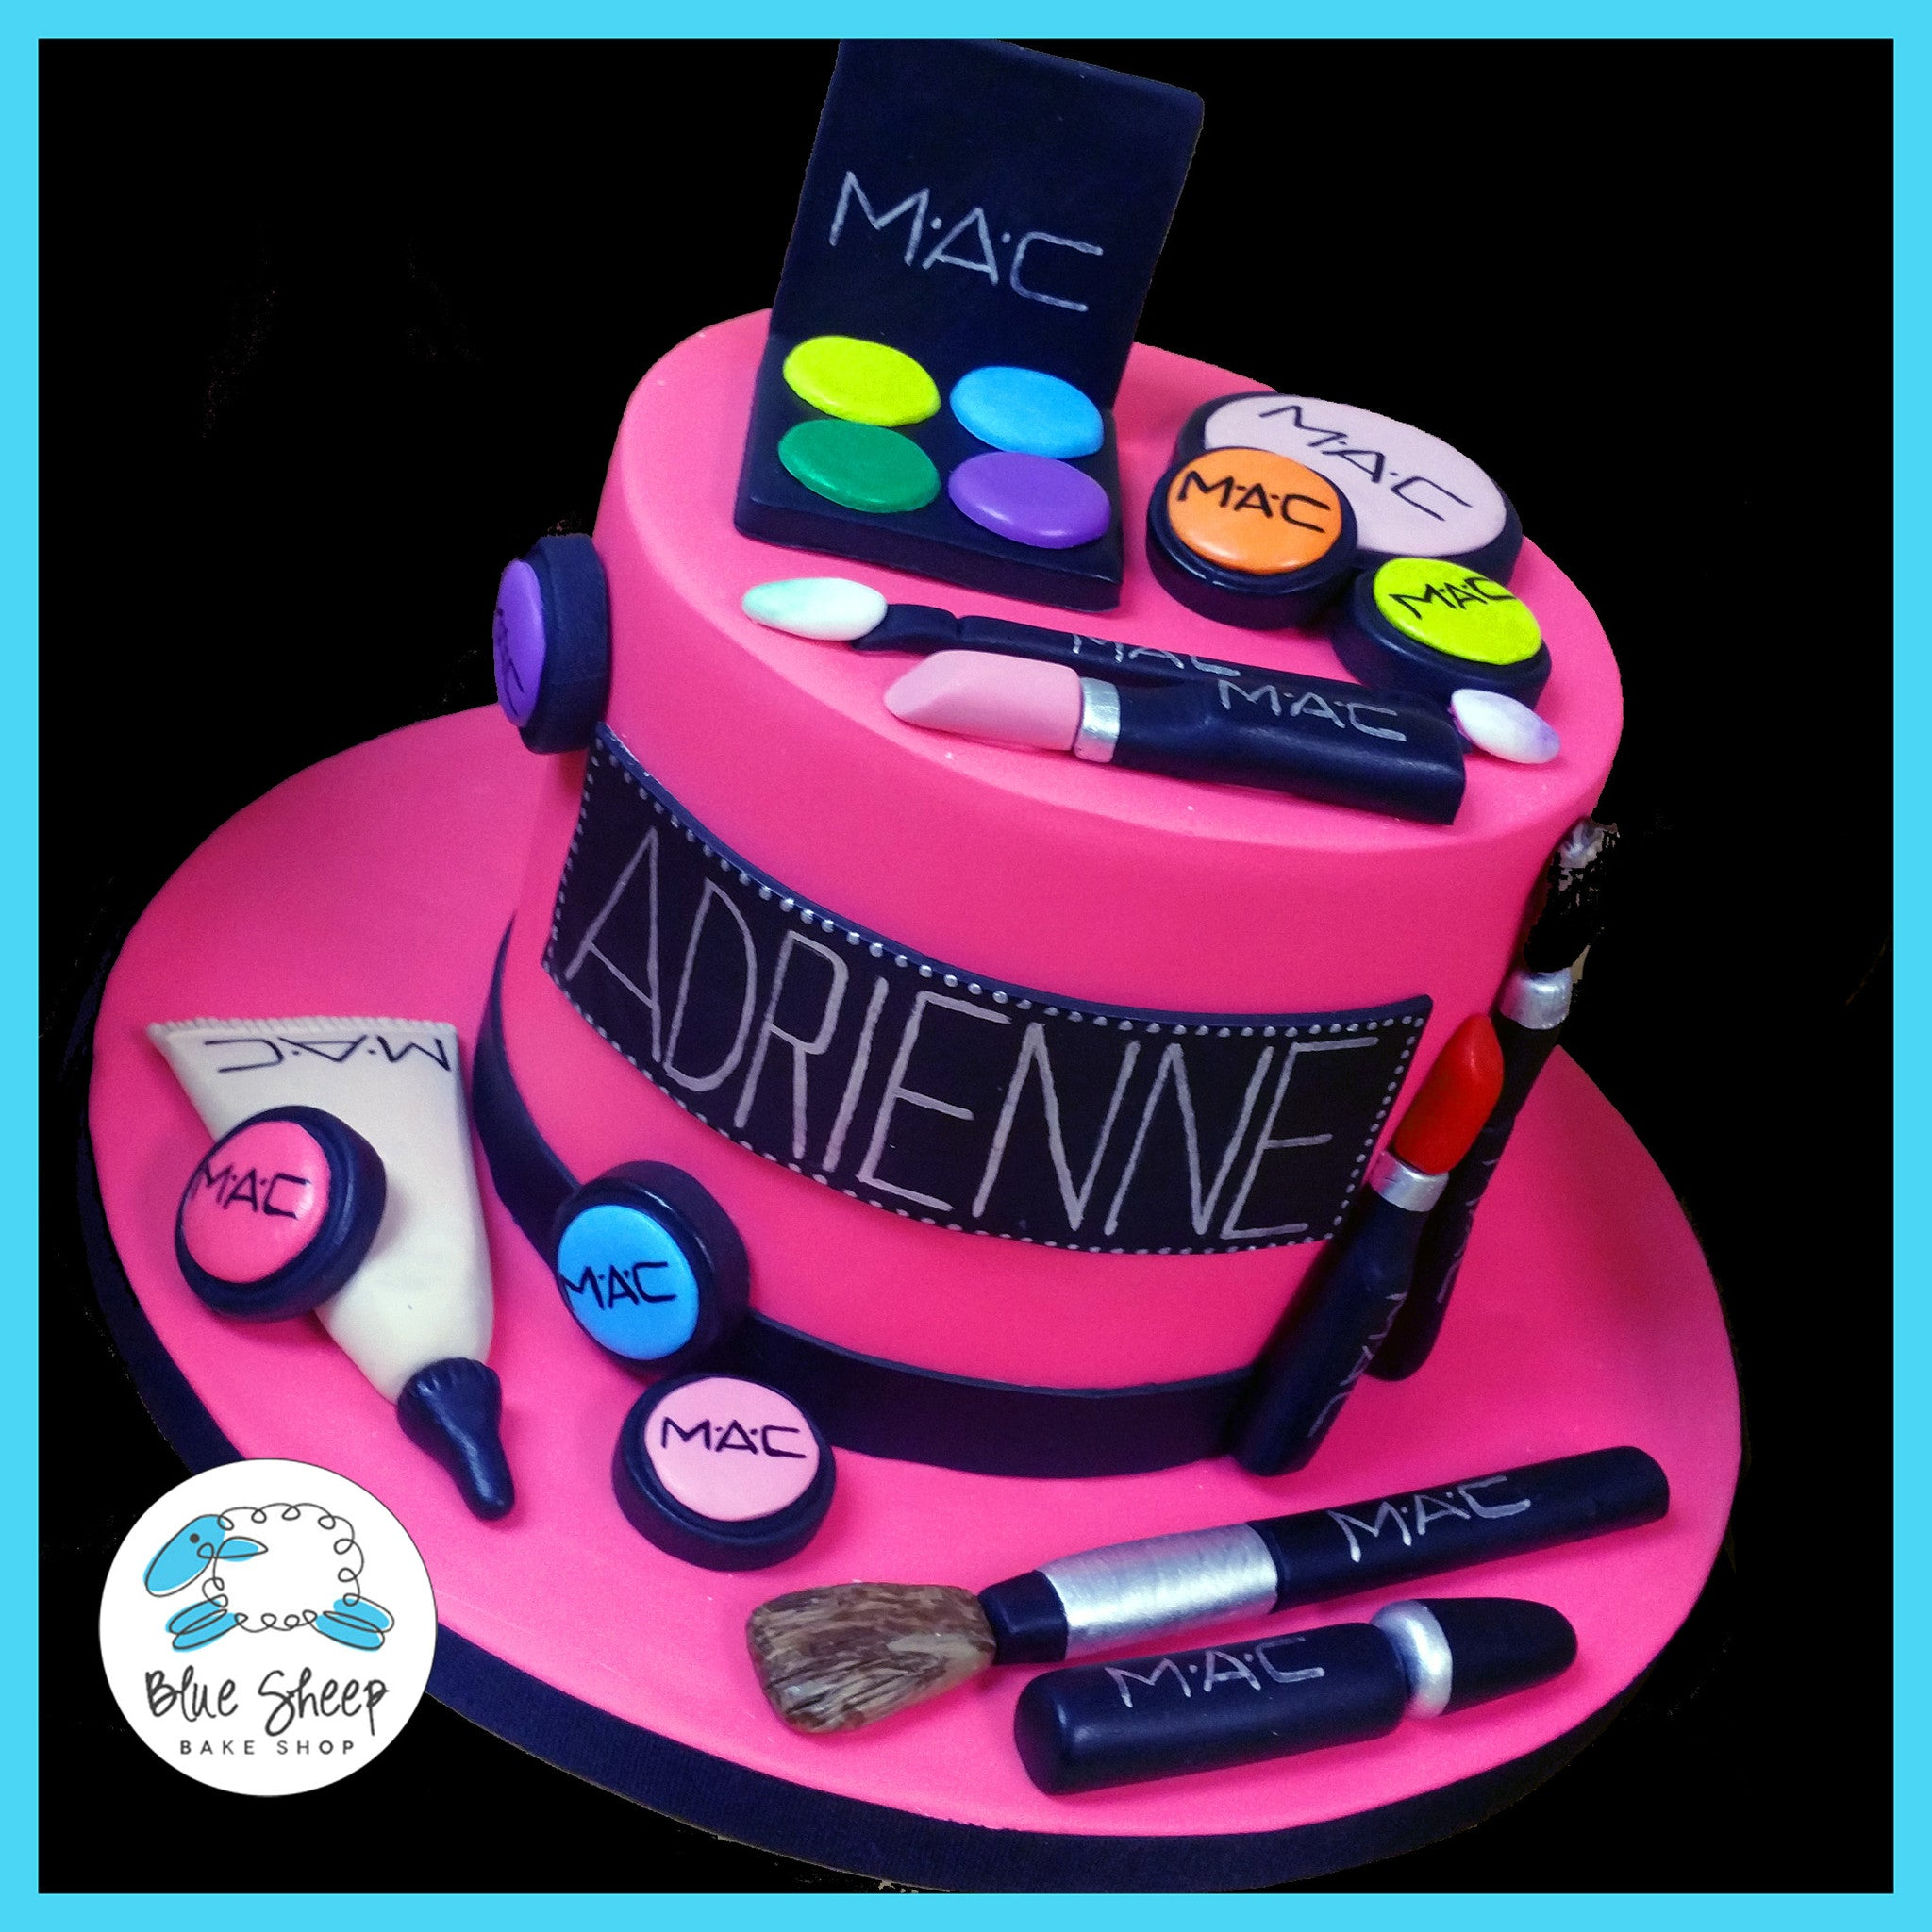 Adriennes MAC Makeup Birthday Cake Blue Sheep Bake Shop